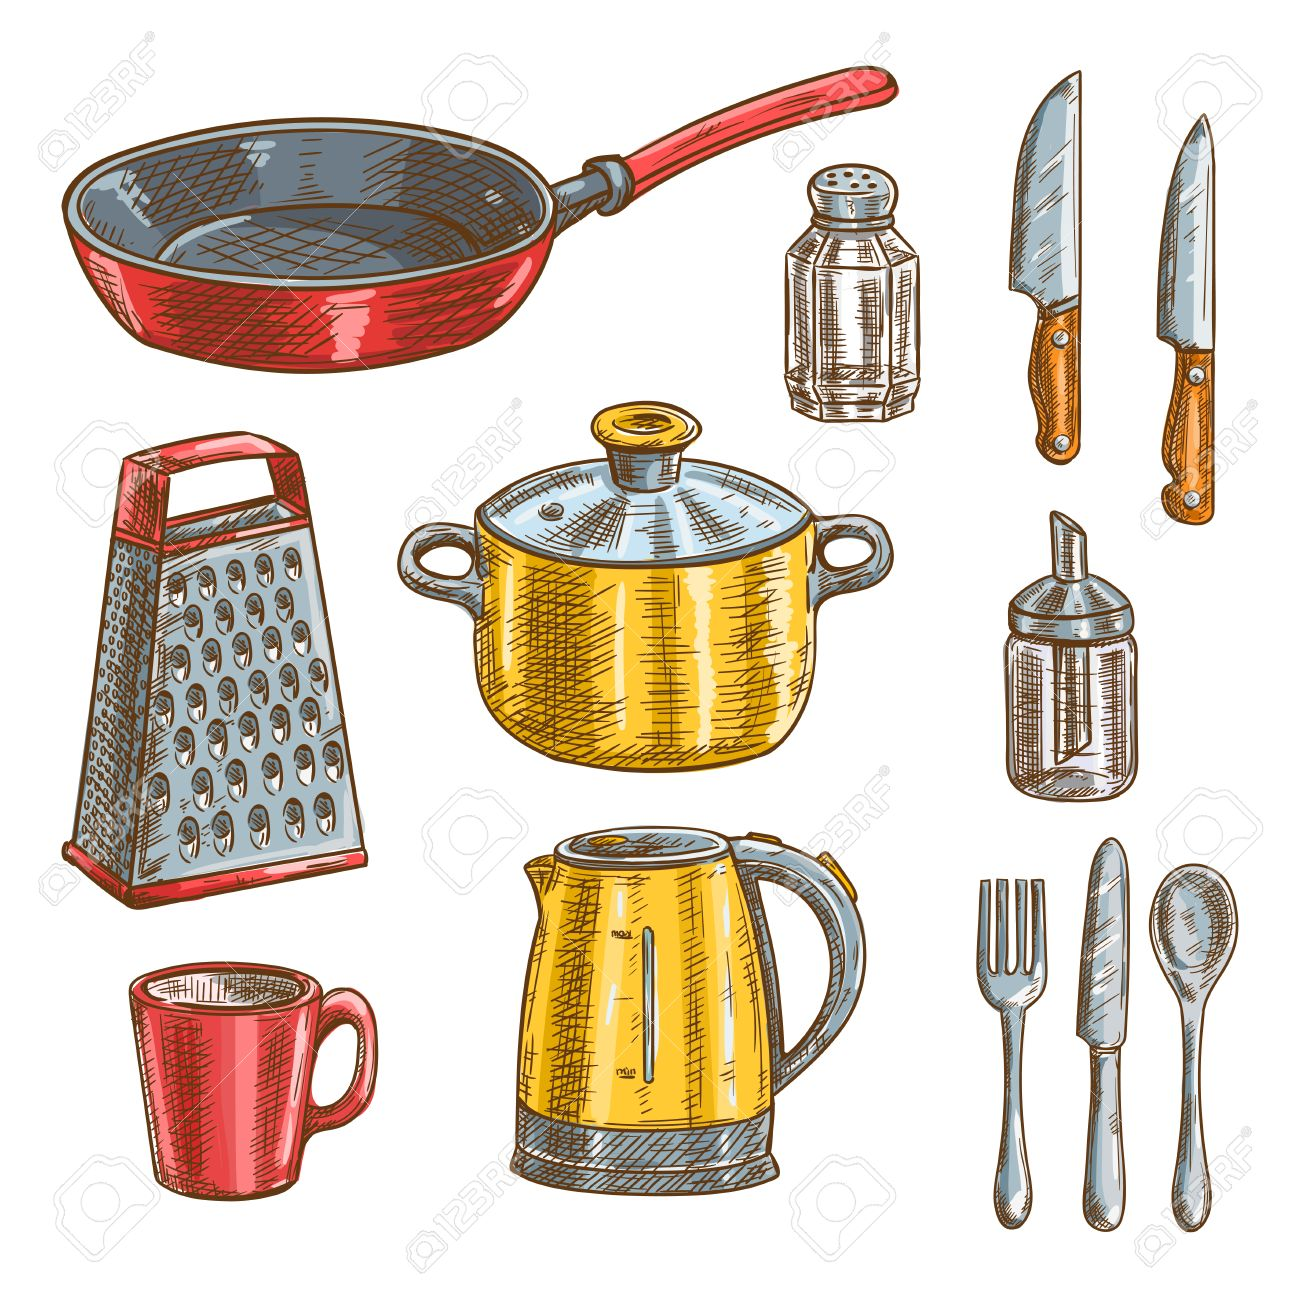 Kitchen And Cooking Utensils Sketches Of Knife, Spoon, Fork ...